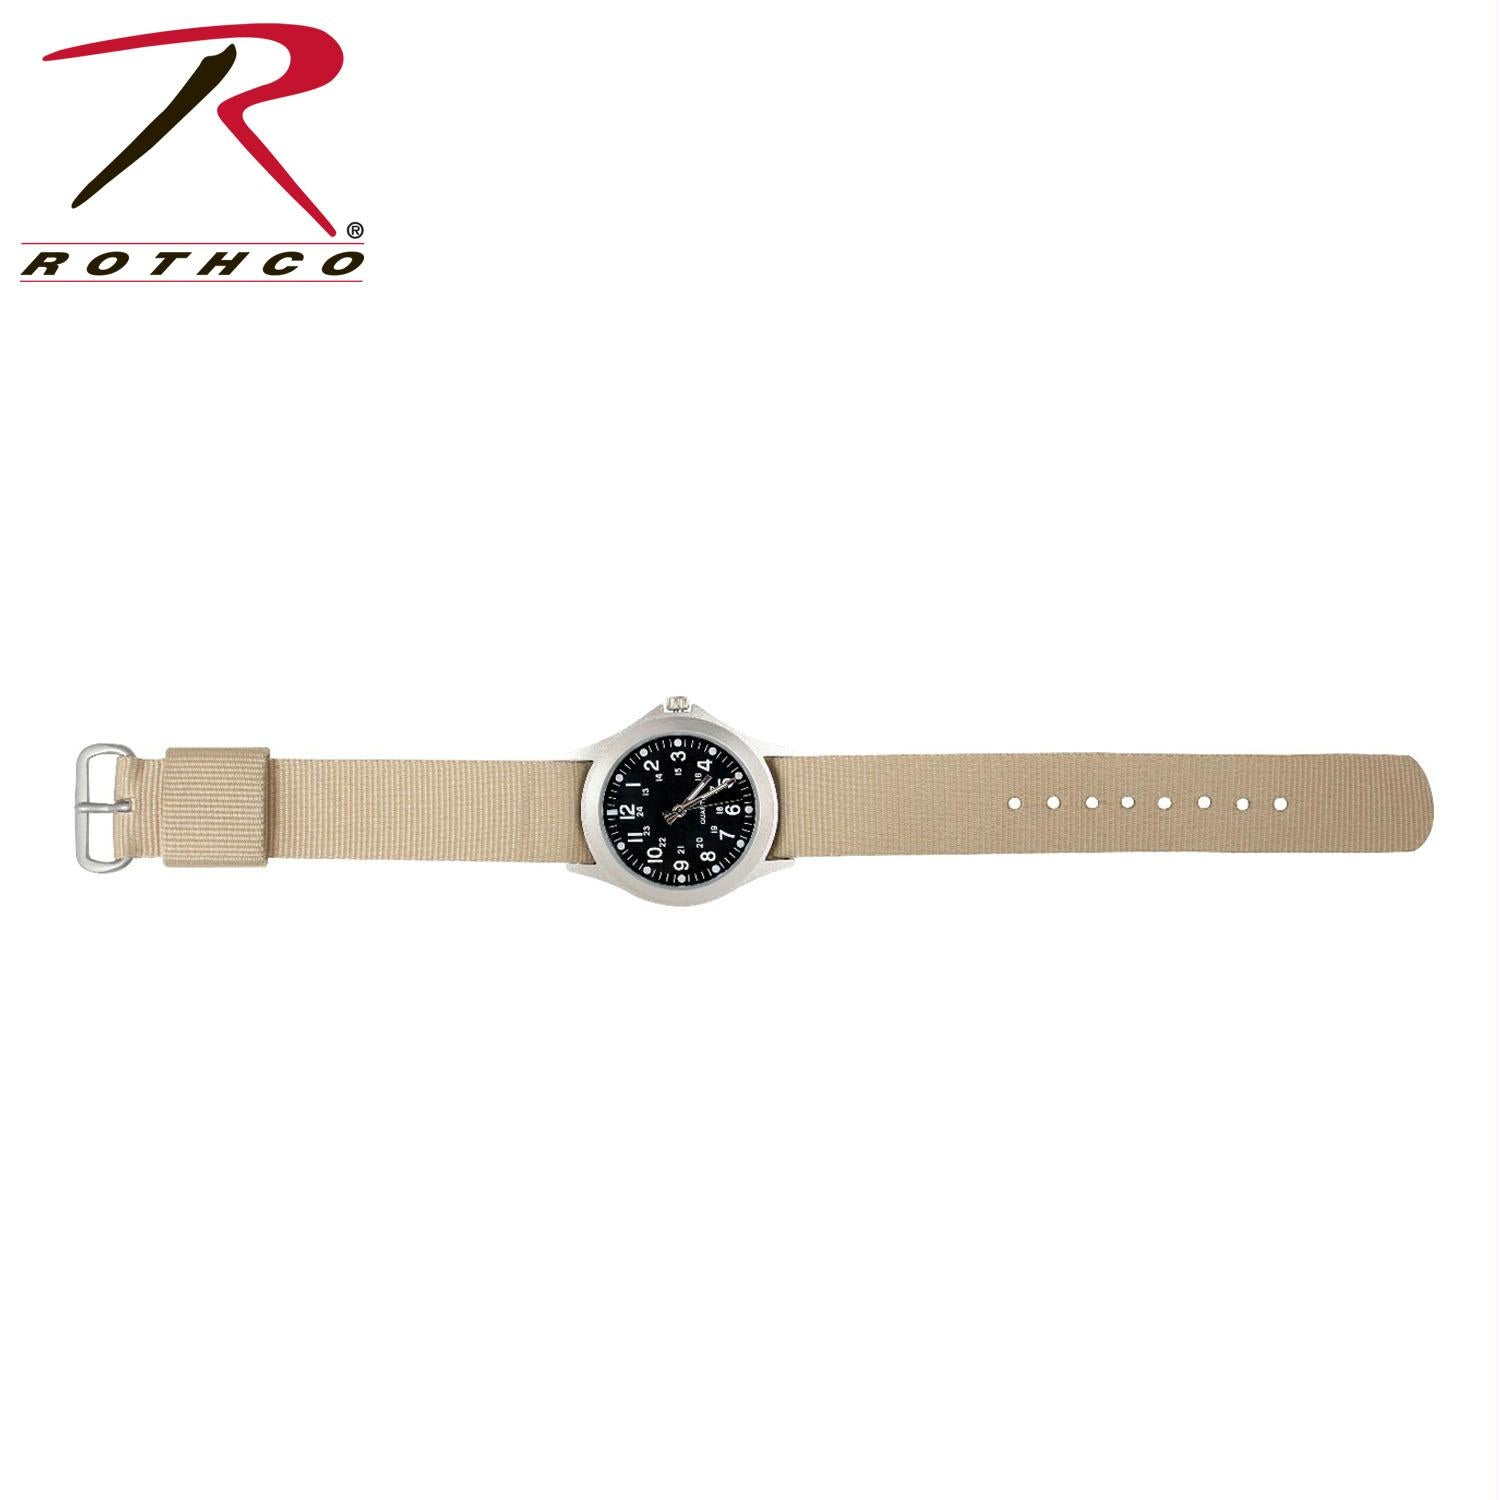 Rothco Military Style Quartz Watch - Tan